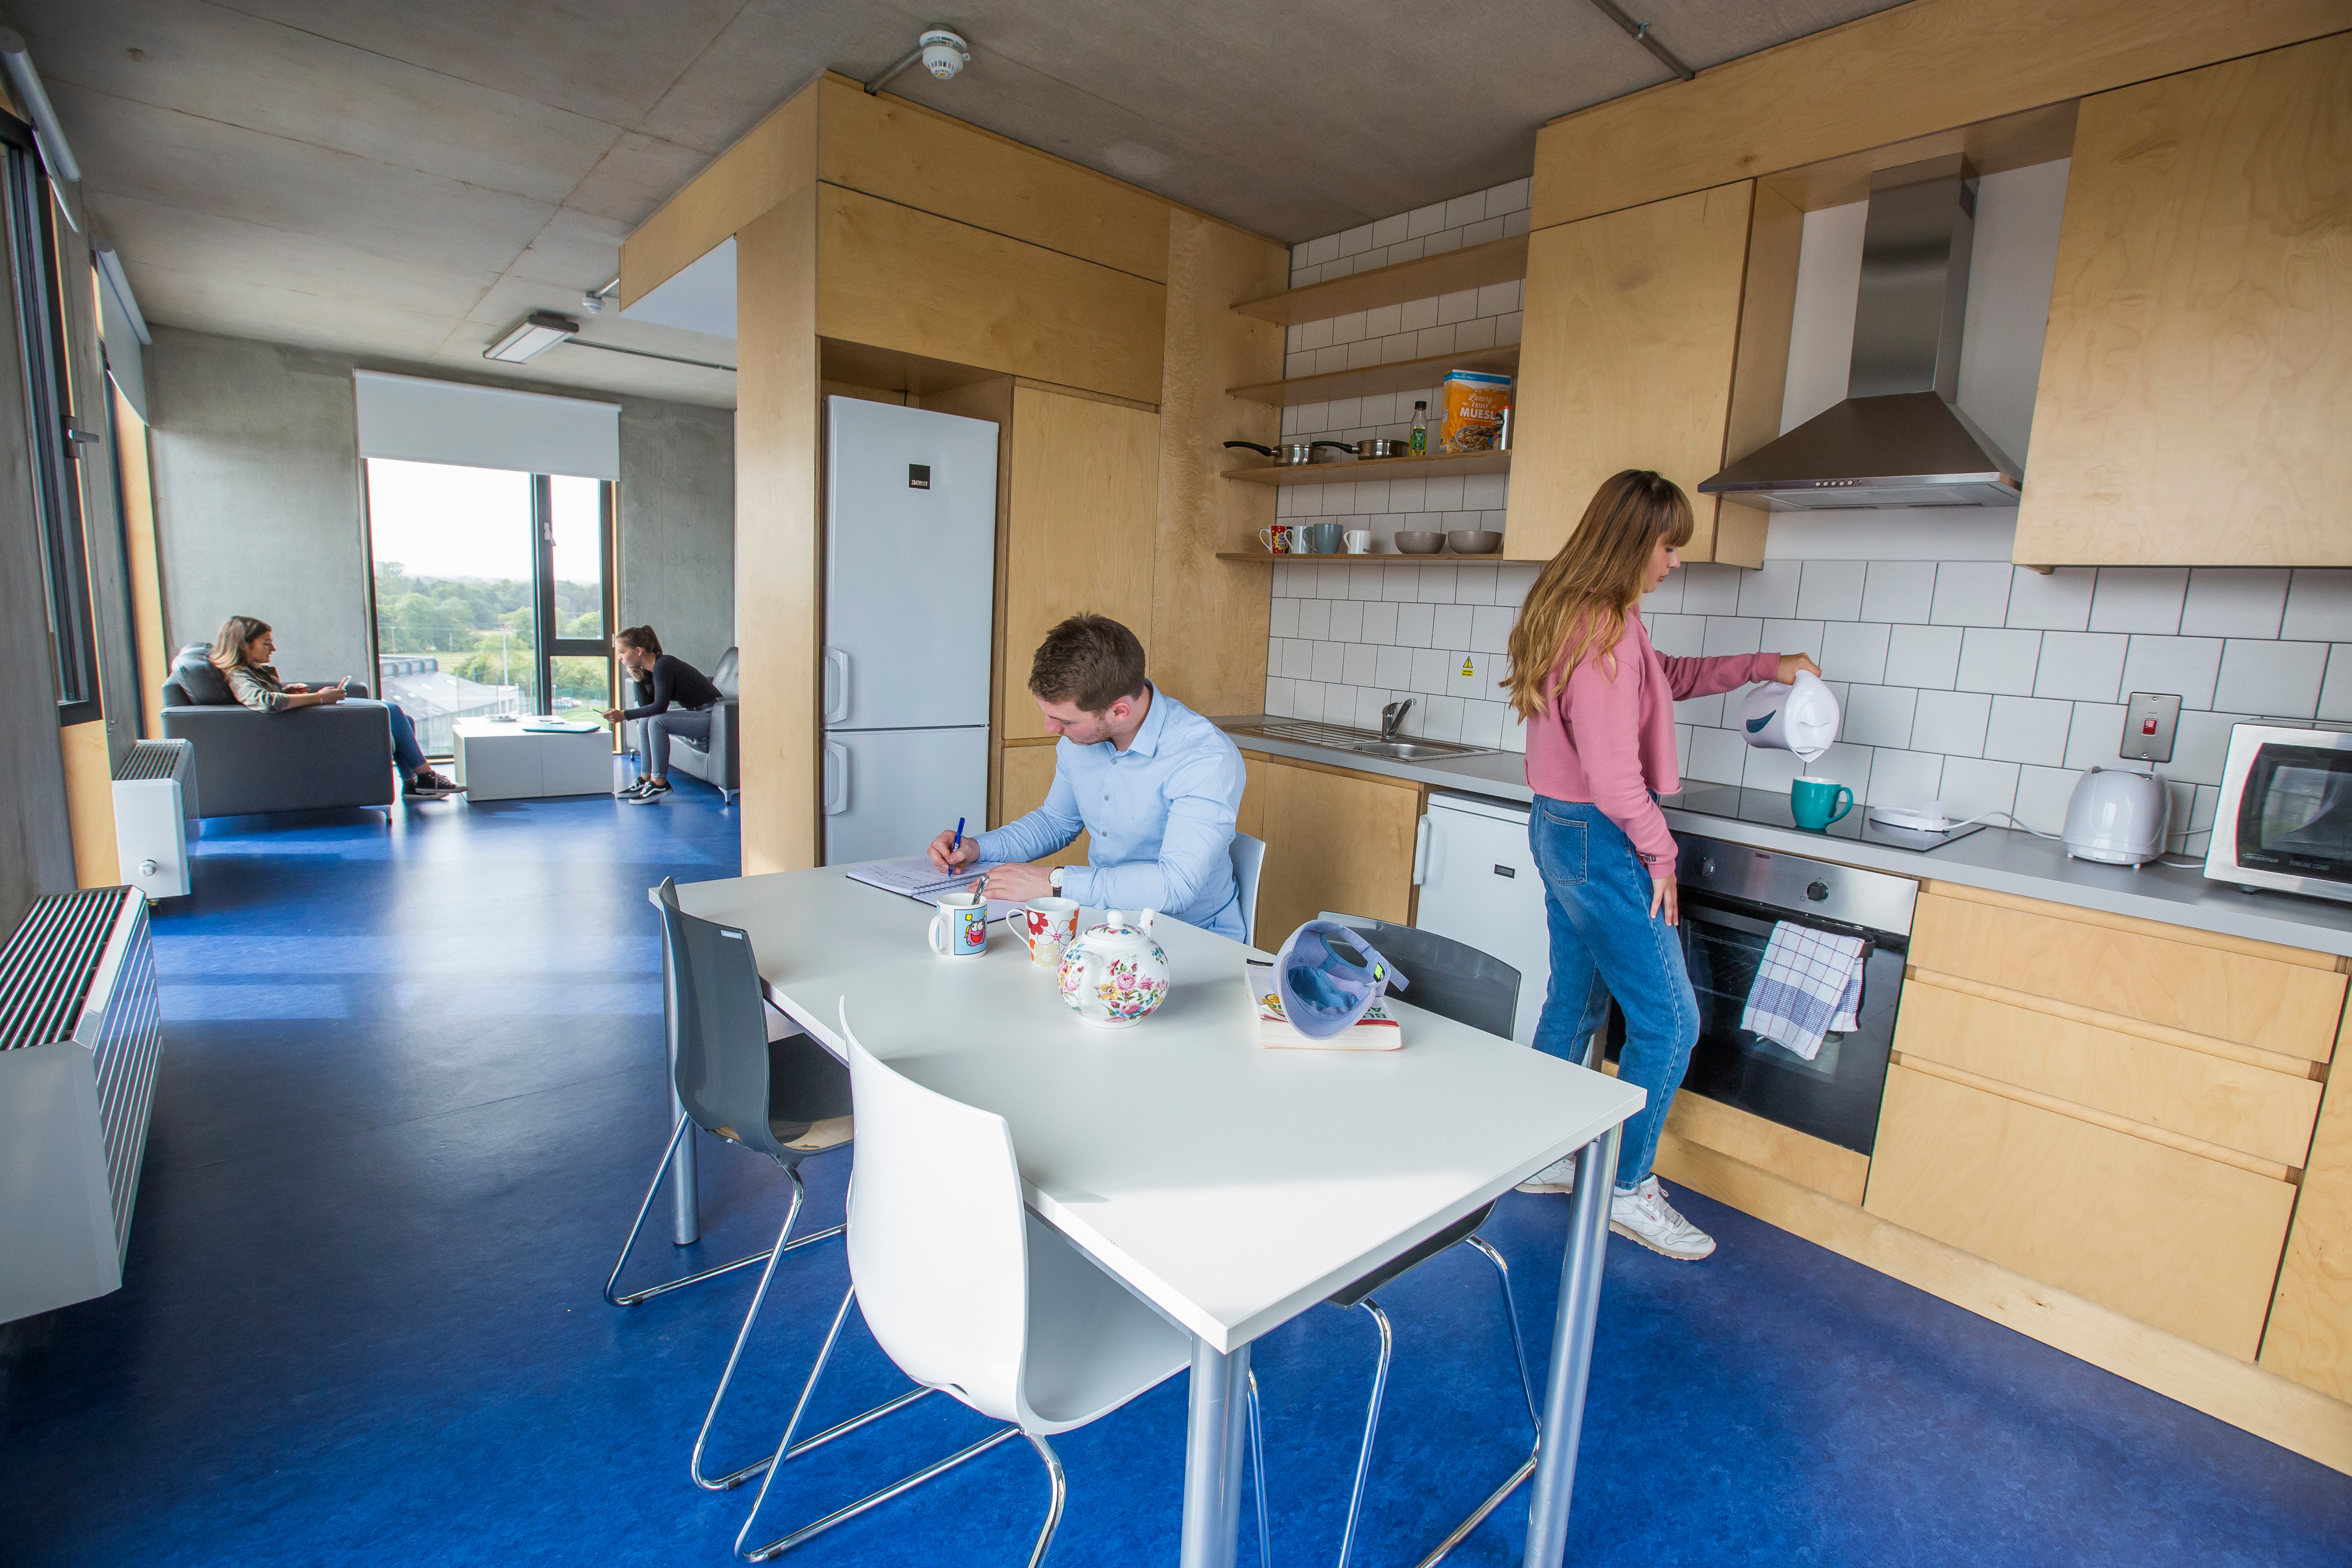 Maynooth_campus_residence_hall_common_area